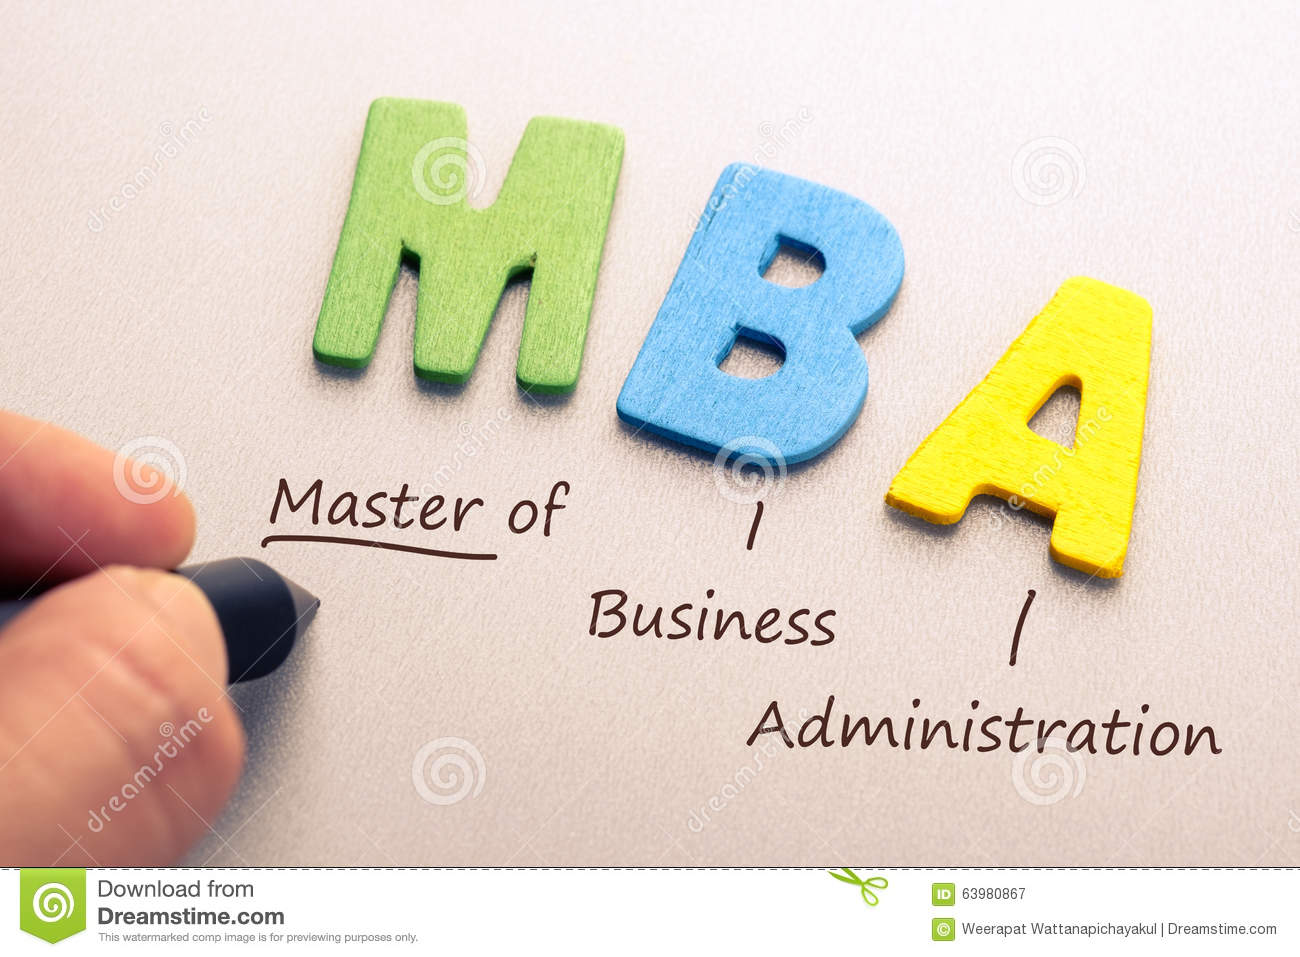 Mba stock image image of hand alphabet career course Define calligraphy